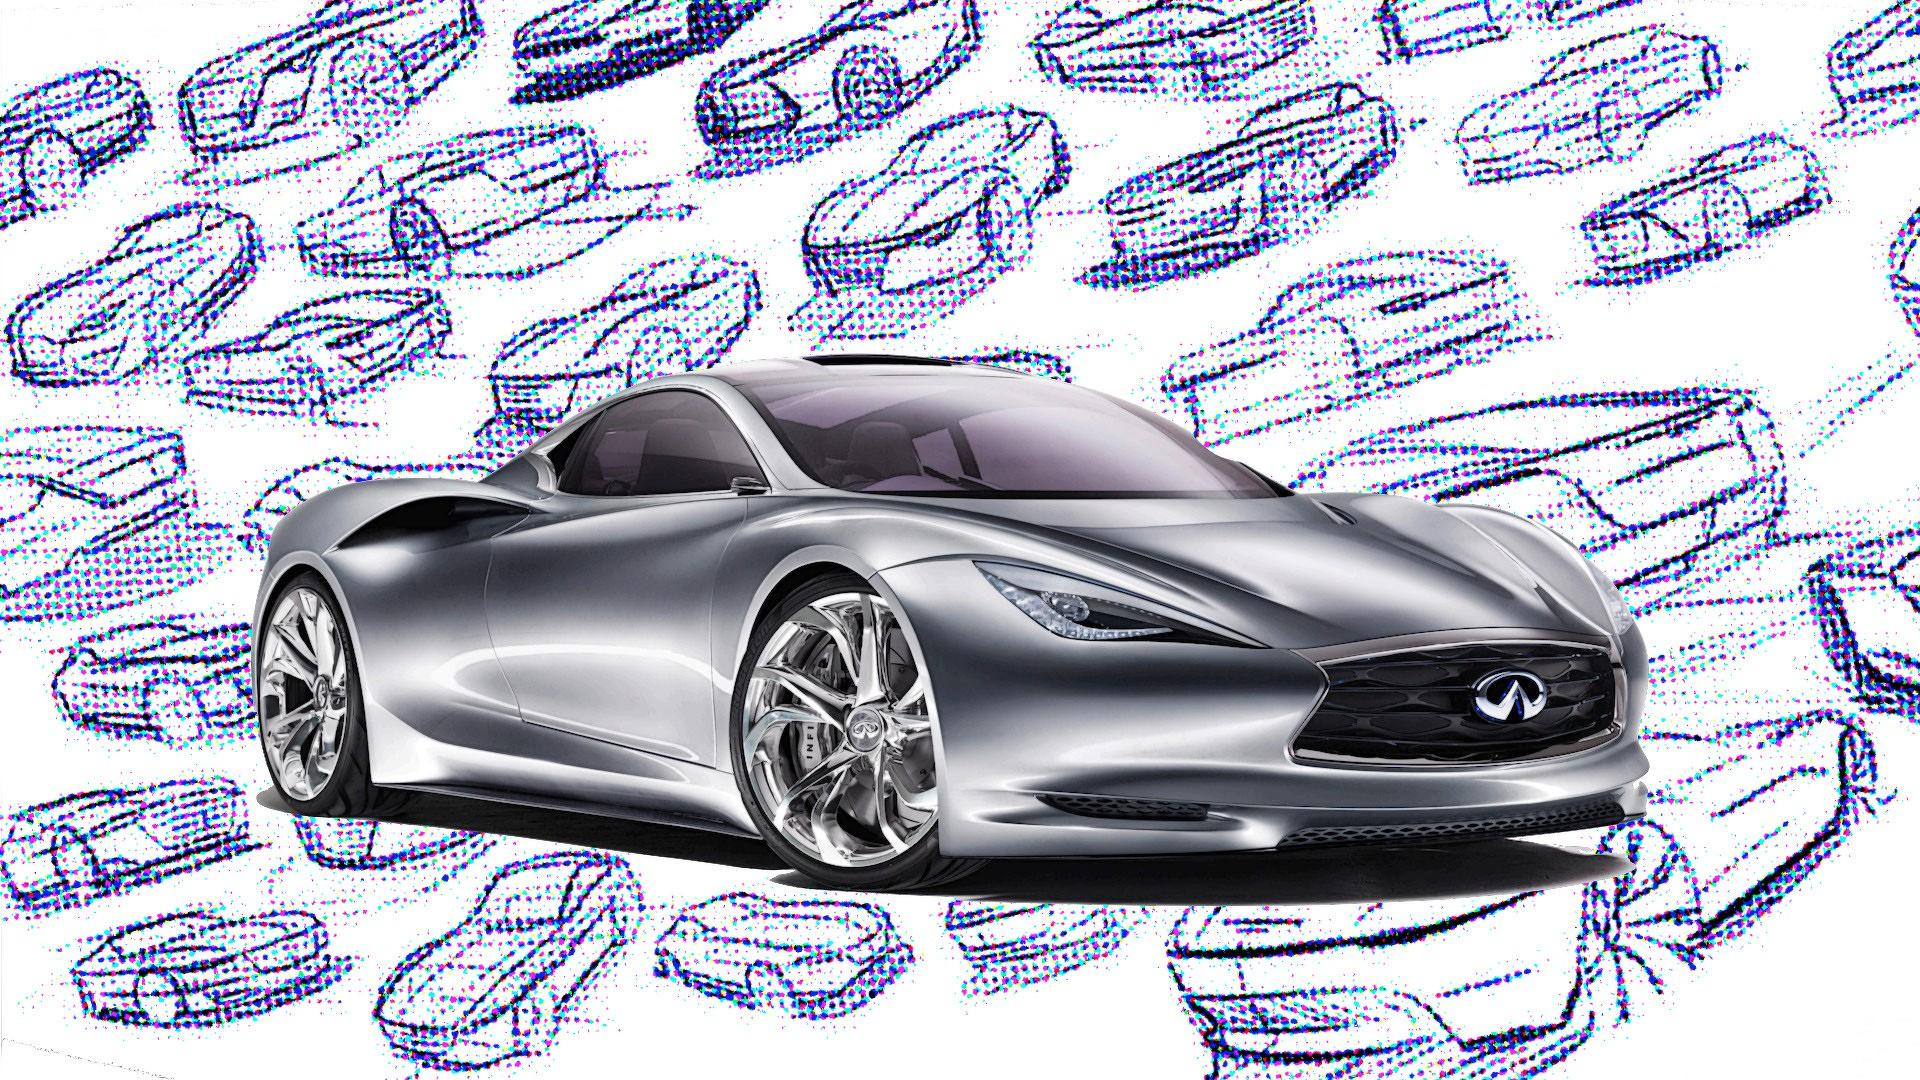 6 head turning infiniti concept cars that preceded prototype 9 6 head turning infiniti concept cars that preceded prototype 9 product 2017 08 16 210002 vanachro Images